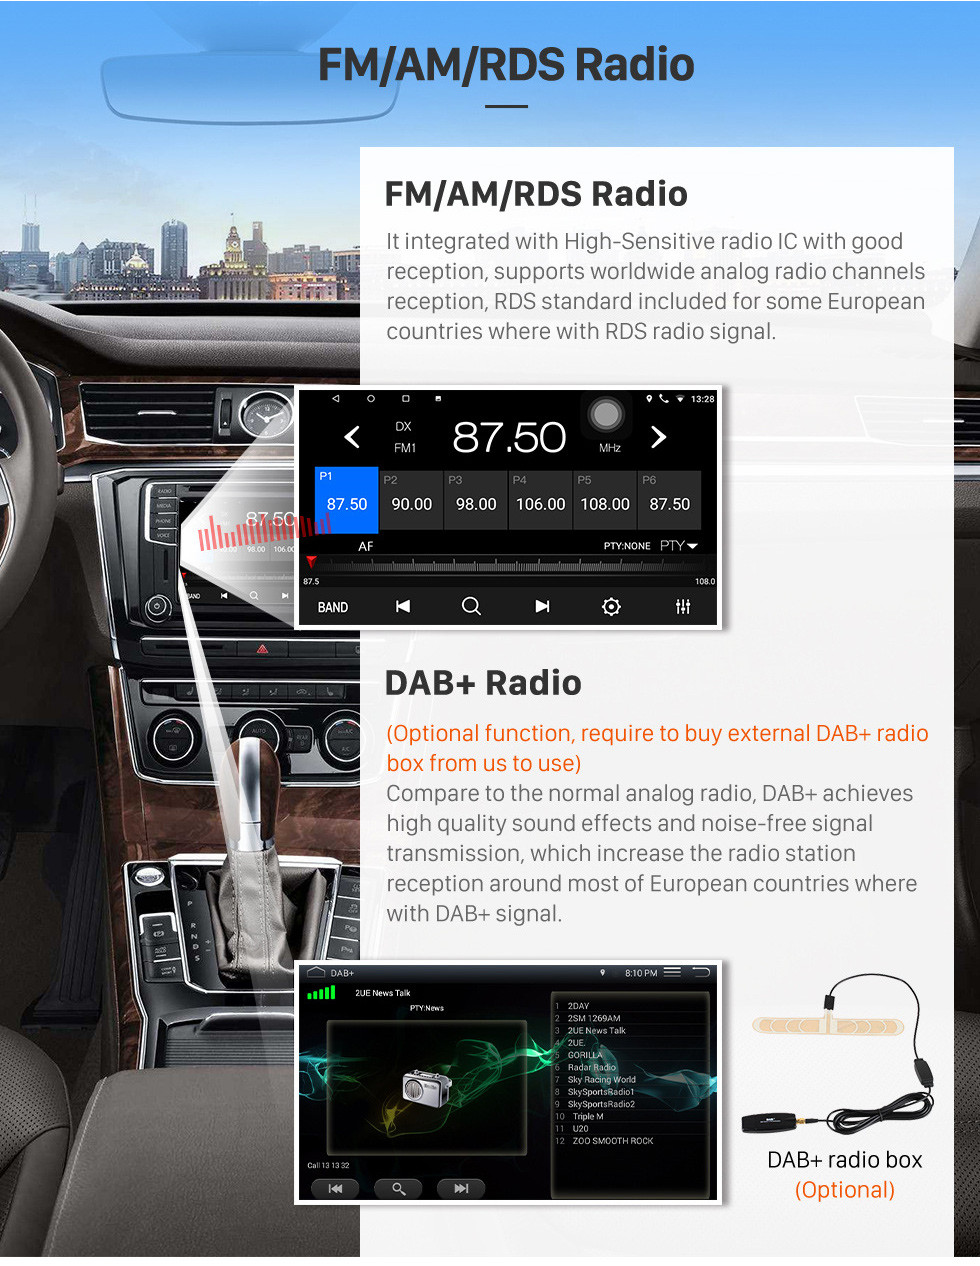 Seicane HD Touchscreen 9 inch Android 10.0 GPS Navigation Radio for 2018-2019 chevy Chevrolet Daewoo Matiz/ Spark/ Baic/ Beat with Bluetooth AUX support DVR Carplay OBD